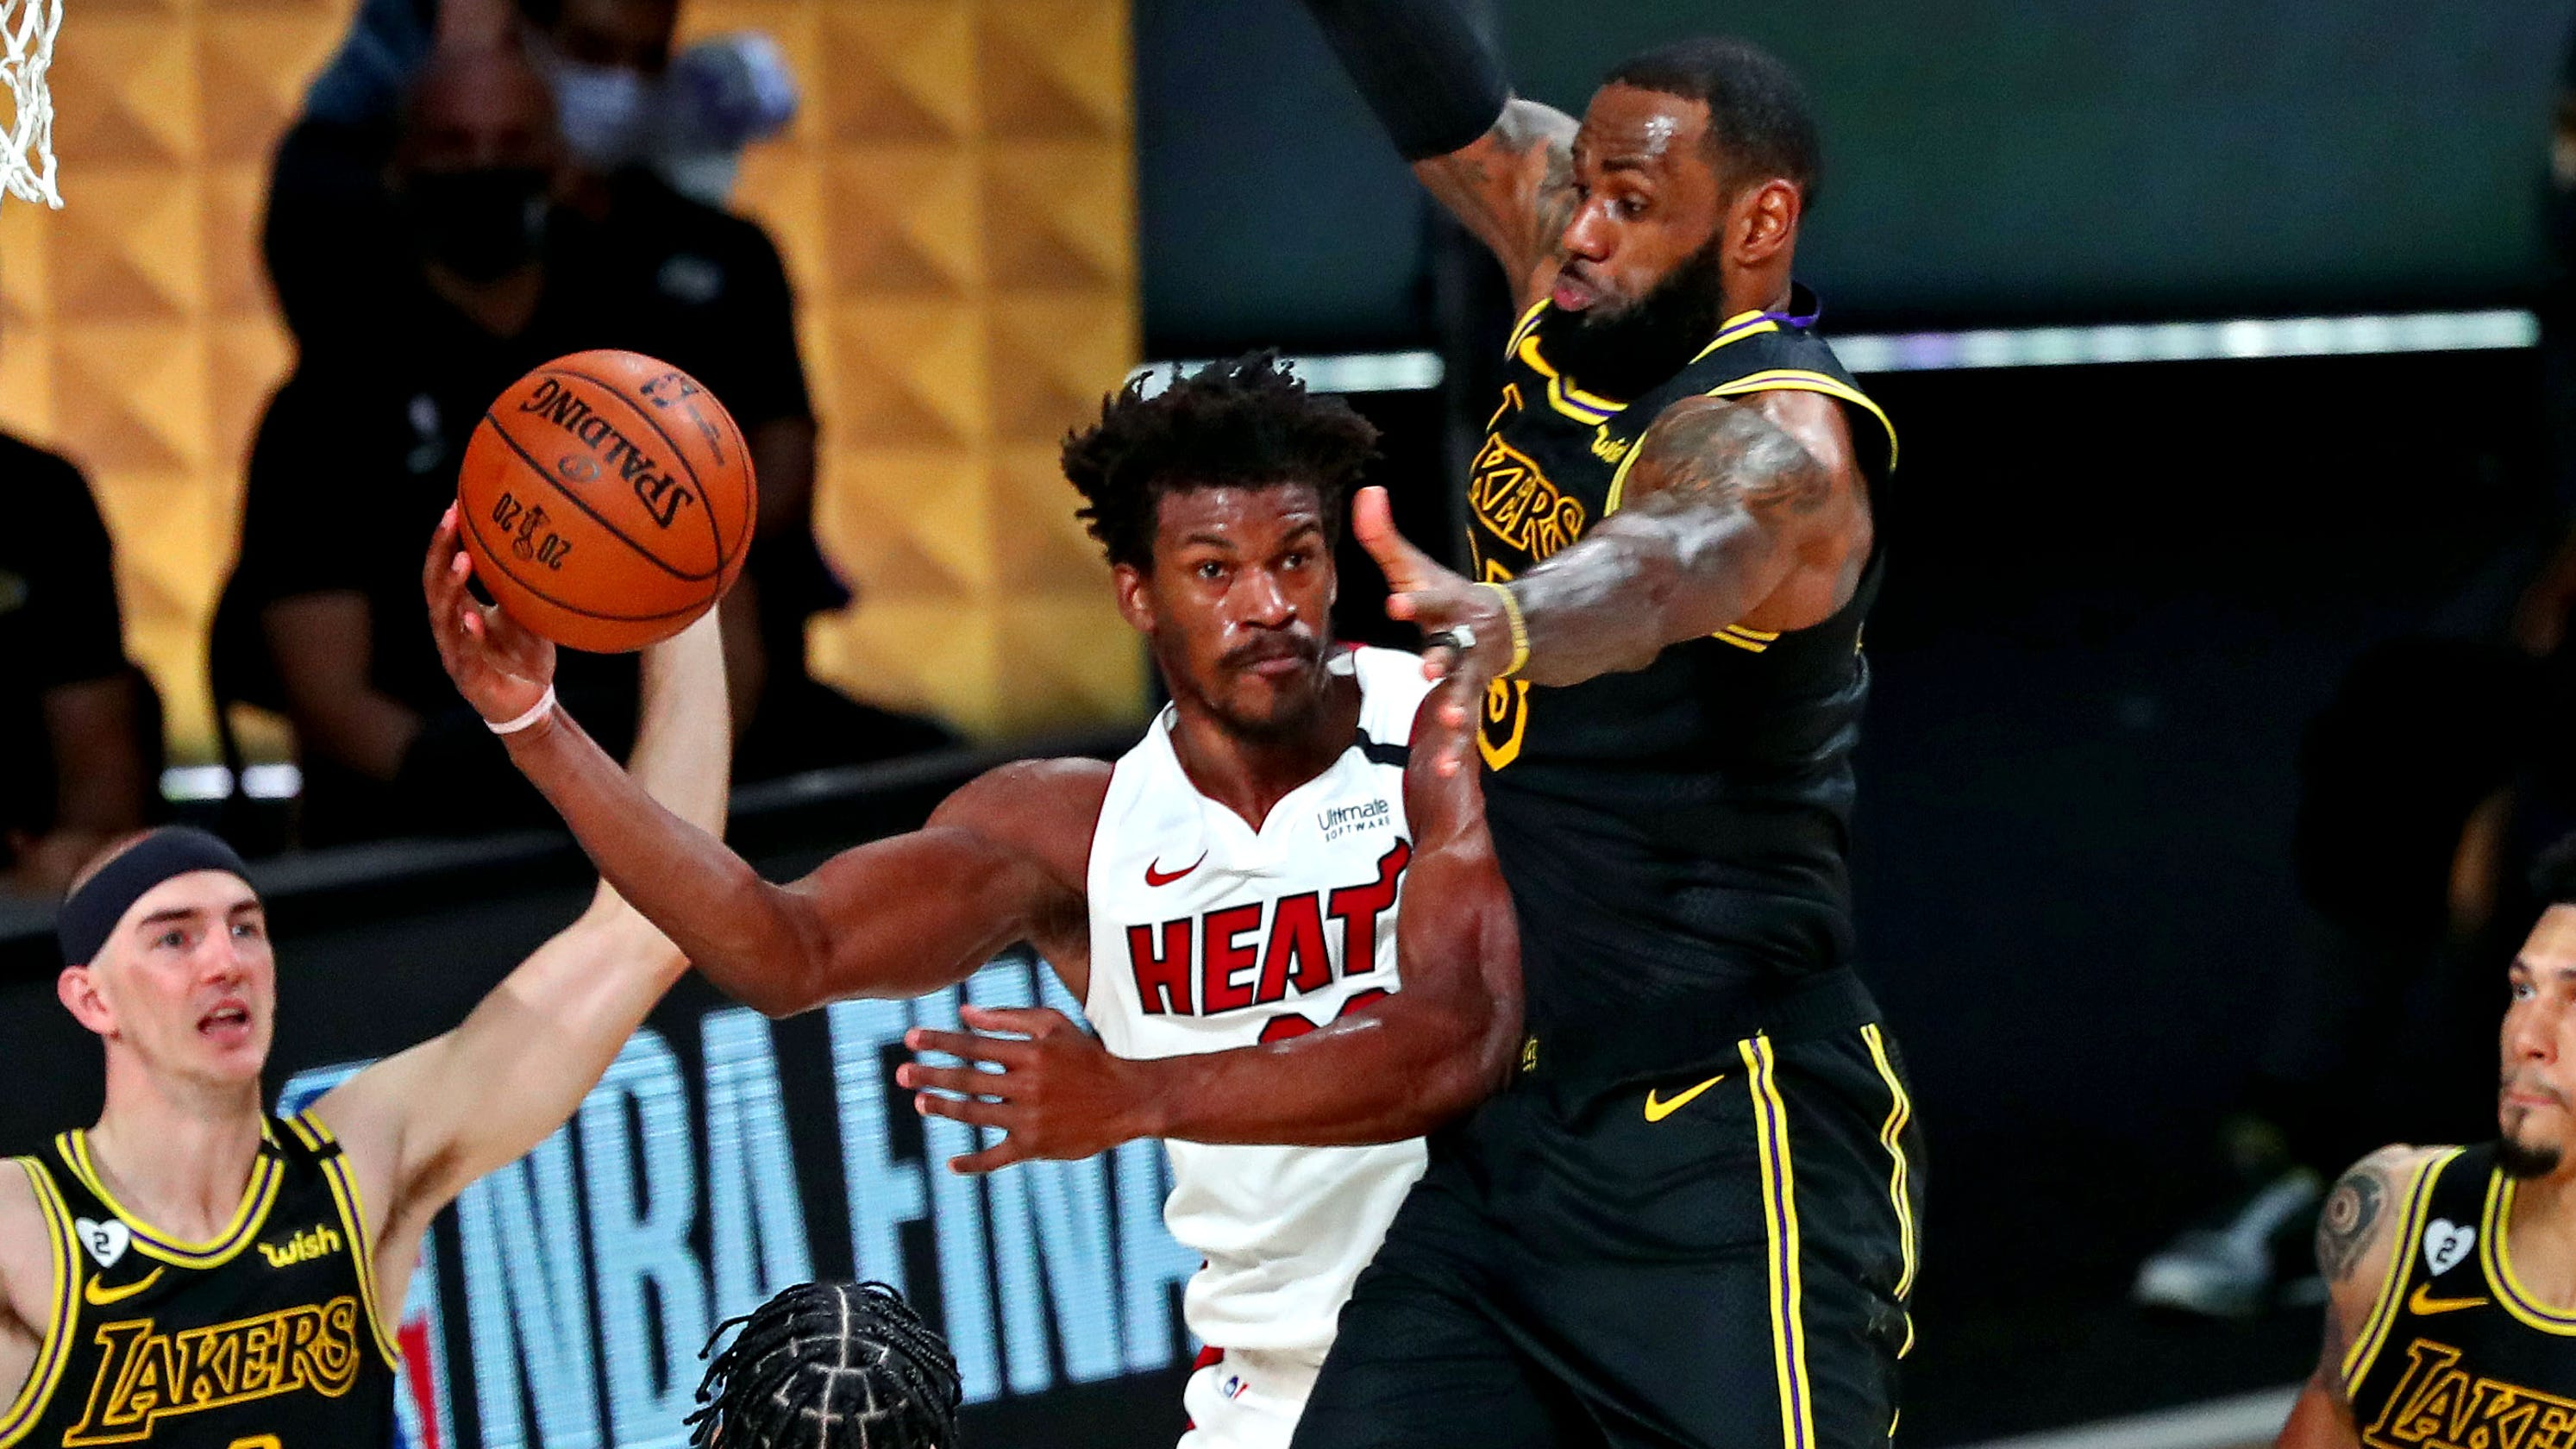 Heat not looking for sympathy down 0-2 vs. Lakers